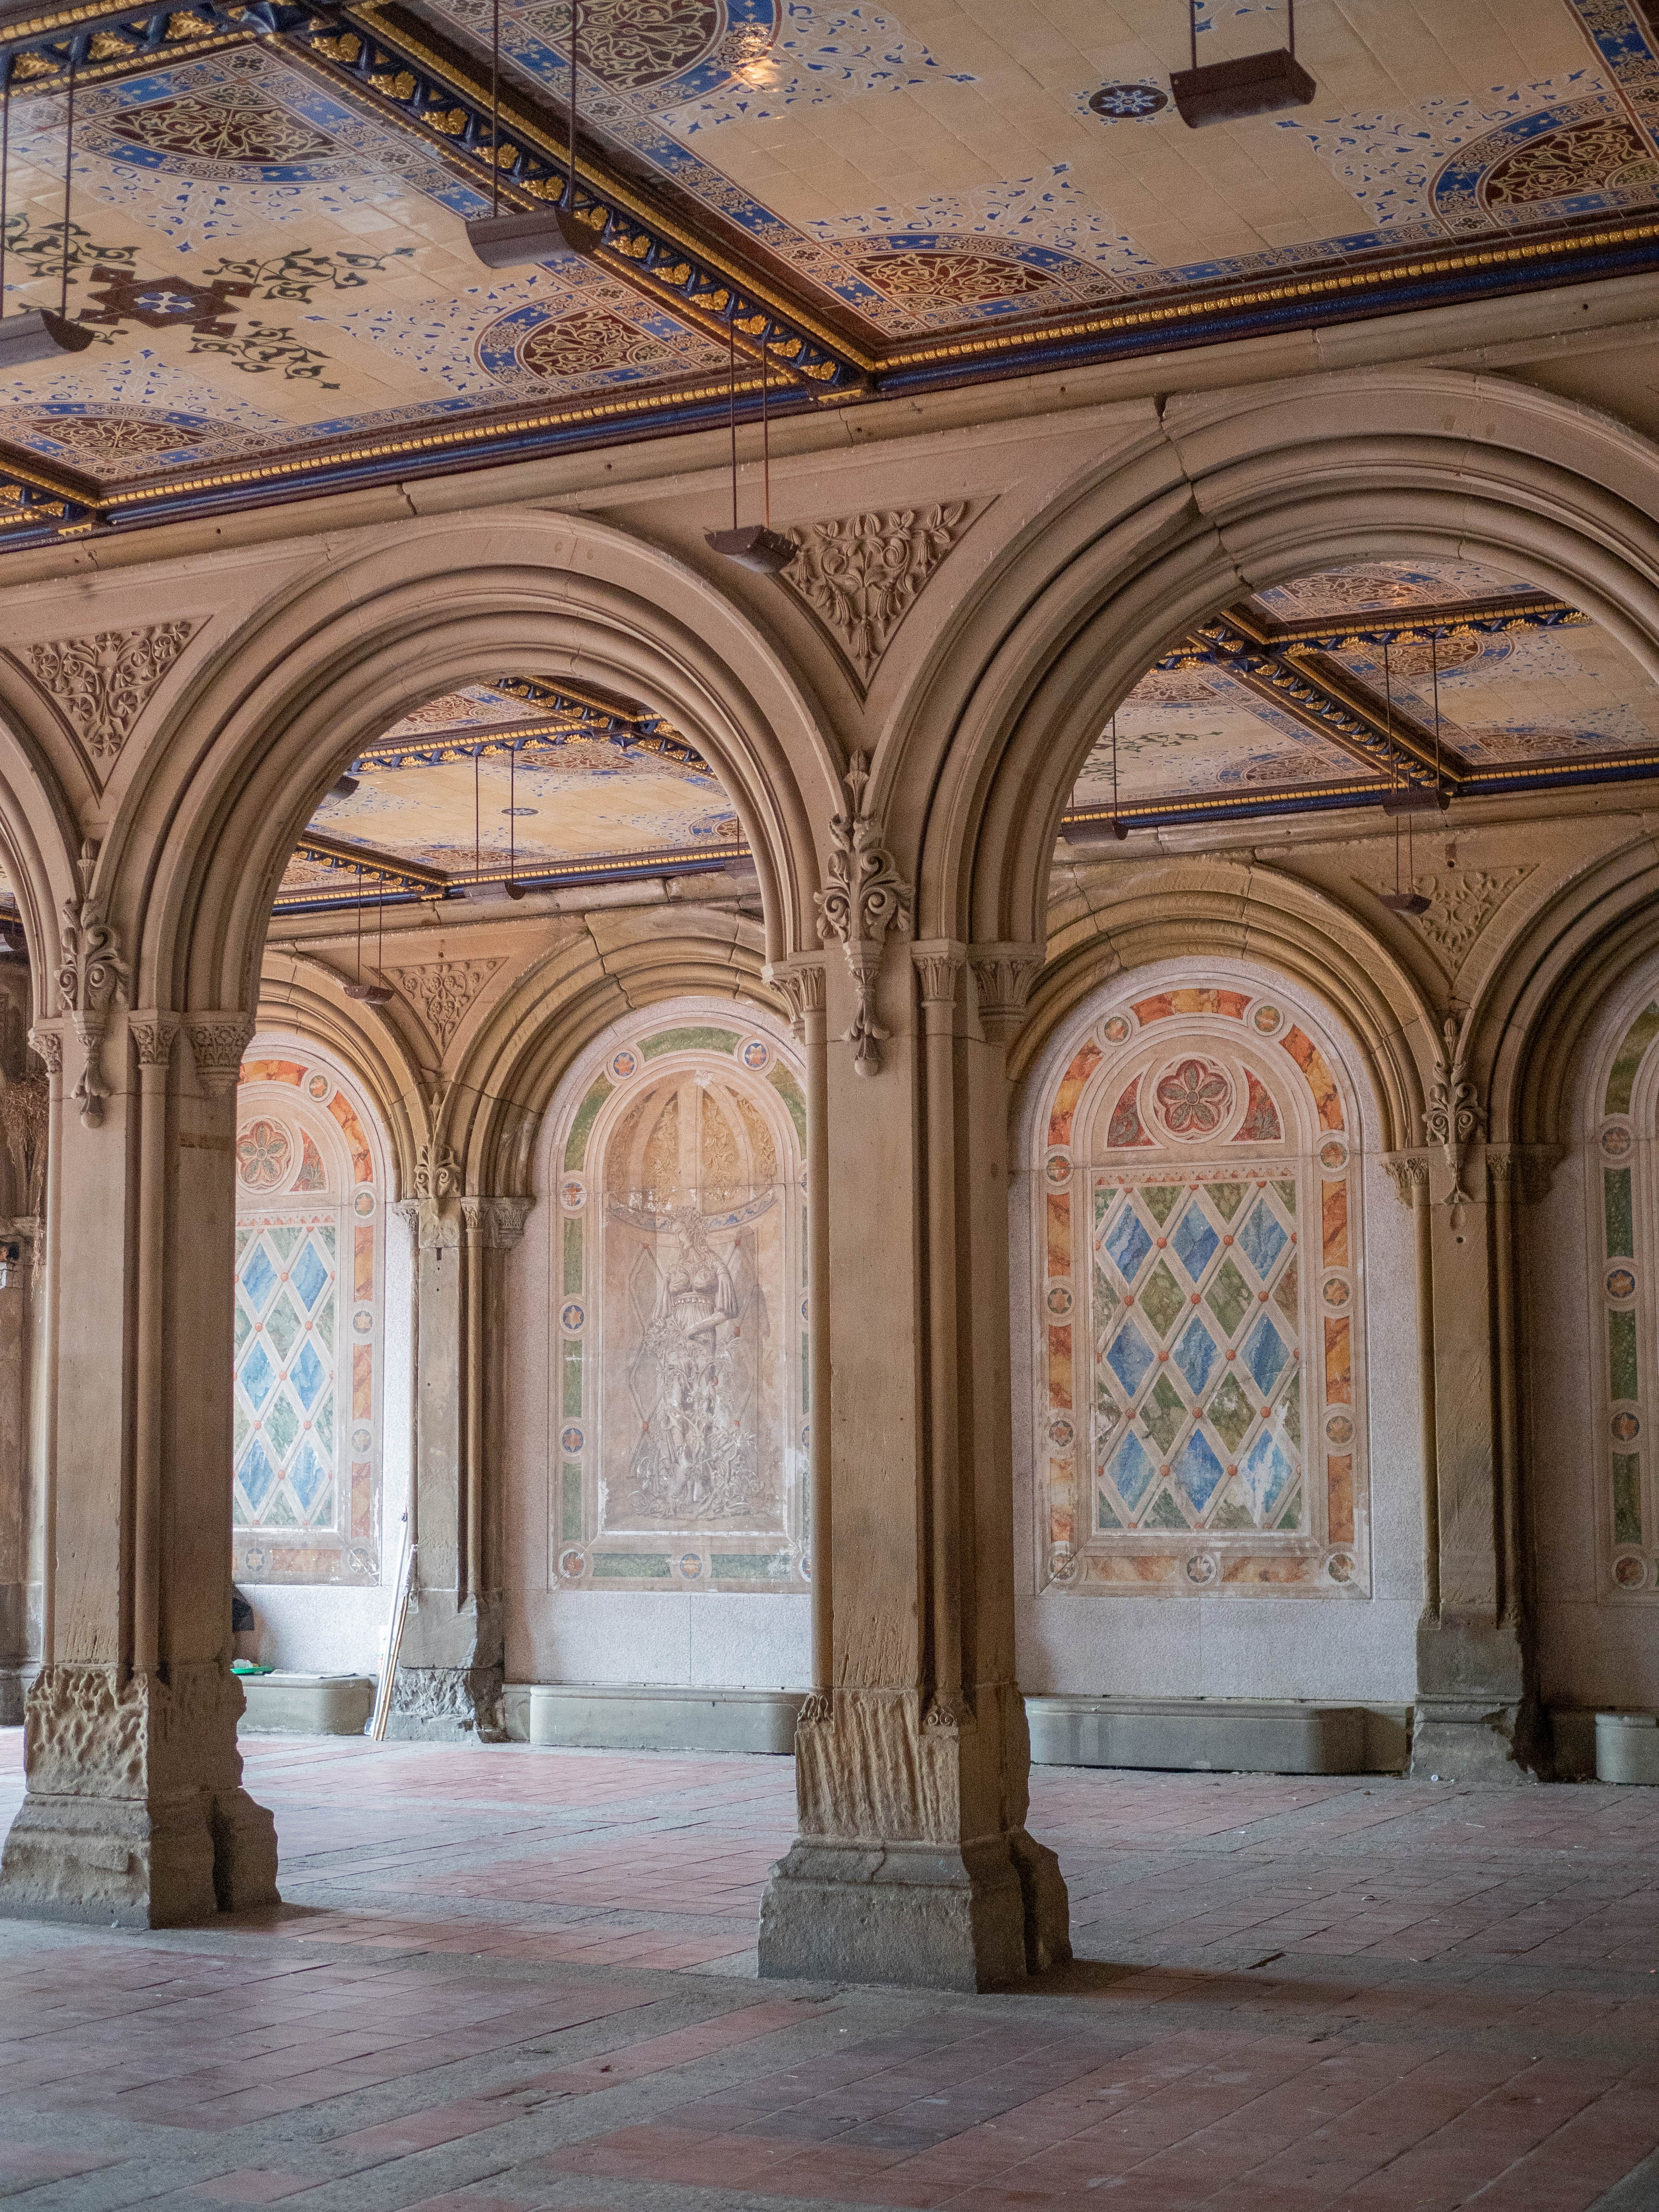 Bethesda Terrace in Central Park, NYC